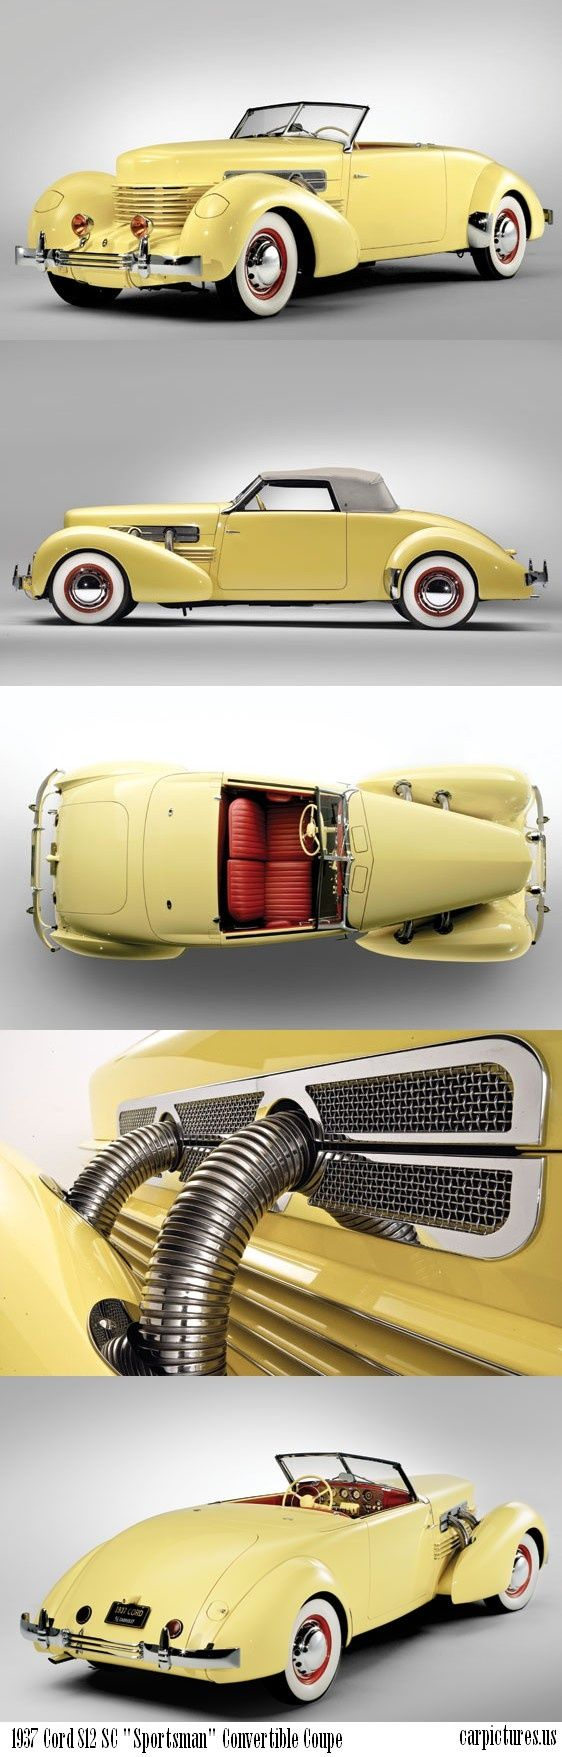 """1937 Cord 812 SC """"Sportsman"""" Convertible Coupe// Got to sit in one in Waupun, WI car show in the 1980's."""